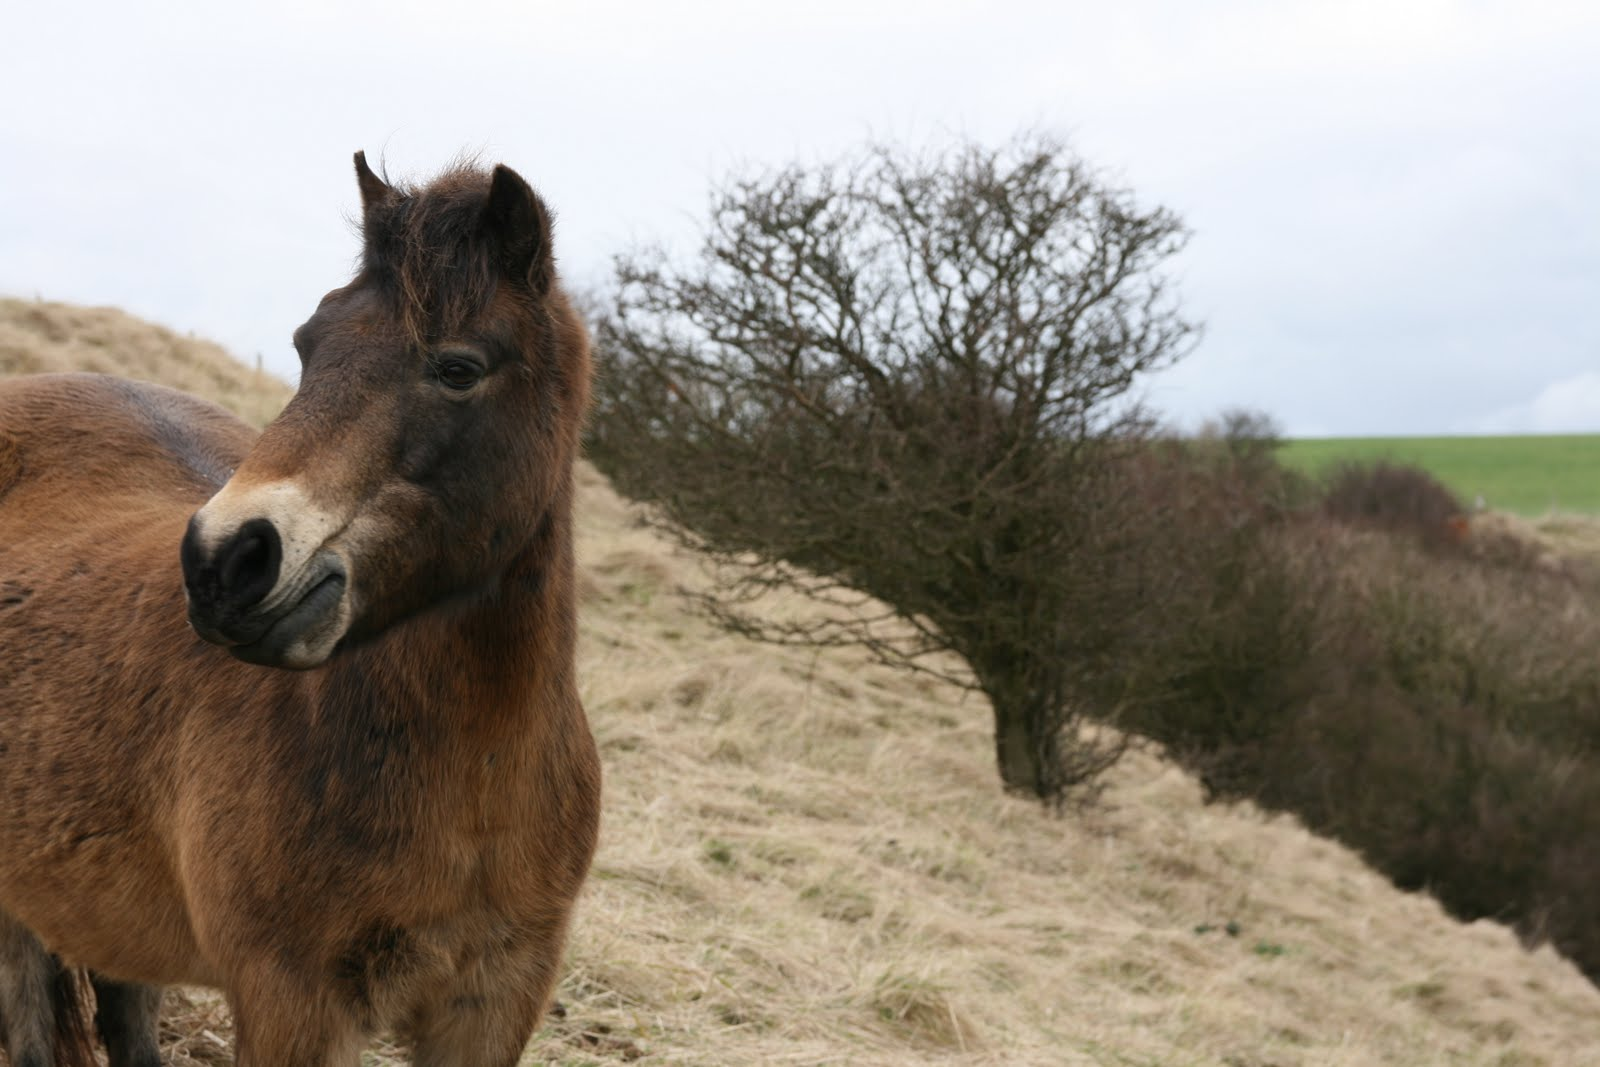 0903 032 Dover, England Horse in a field